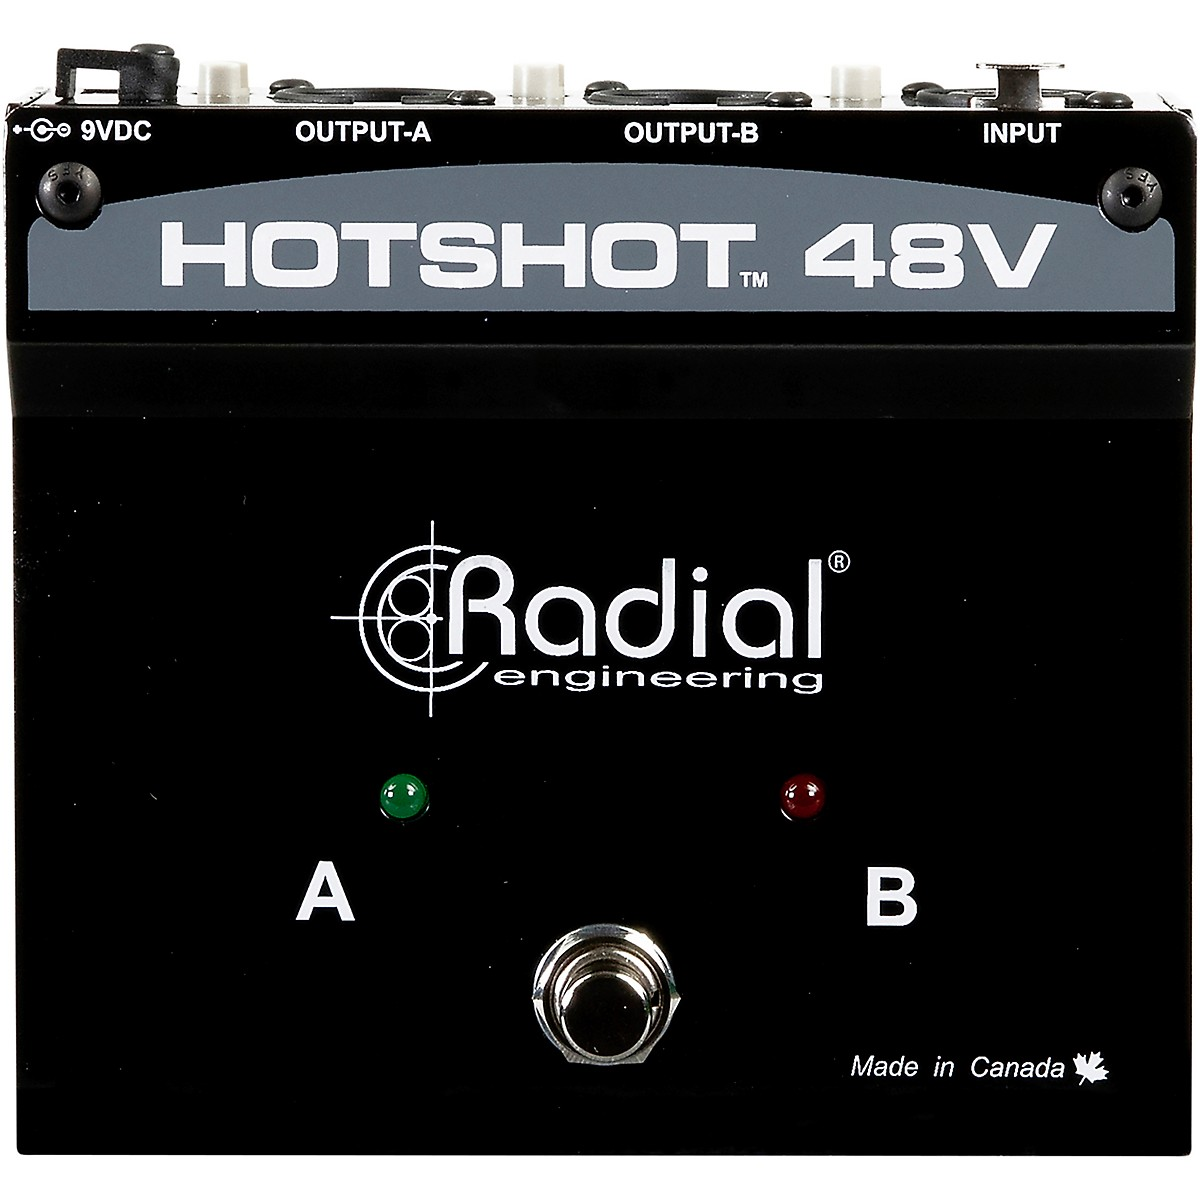 Radial Engineering HotShot 48V Condenser Microphone Switcher